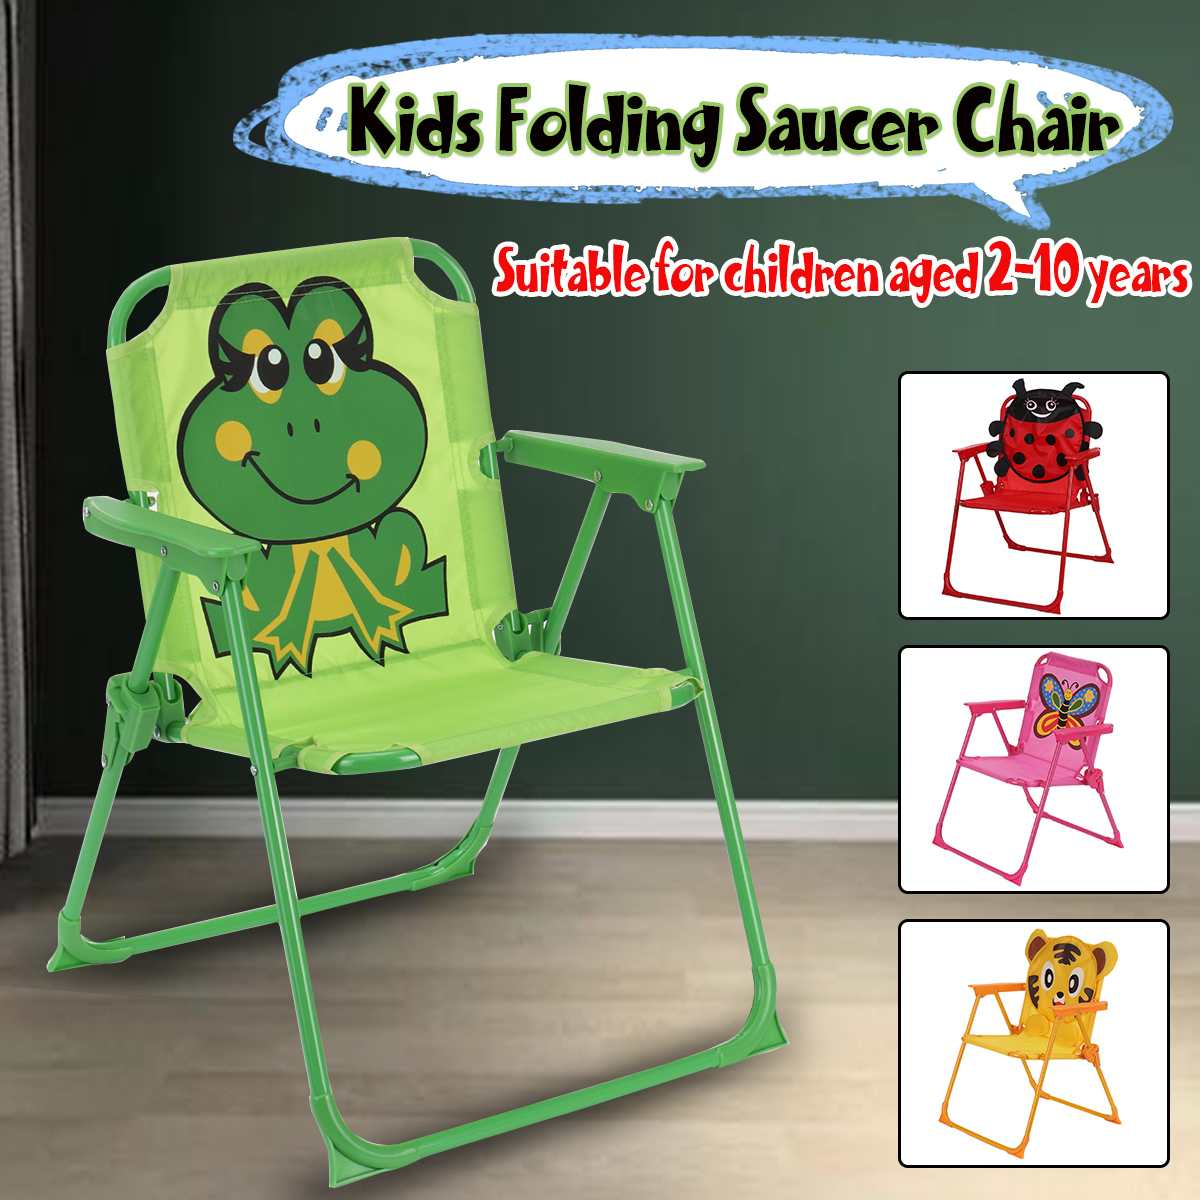 Outdoor Camping Chair Kids Portable Folding Camping Seat for Fishing Festival Picnic BBQ Beach Ultralight Chair